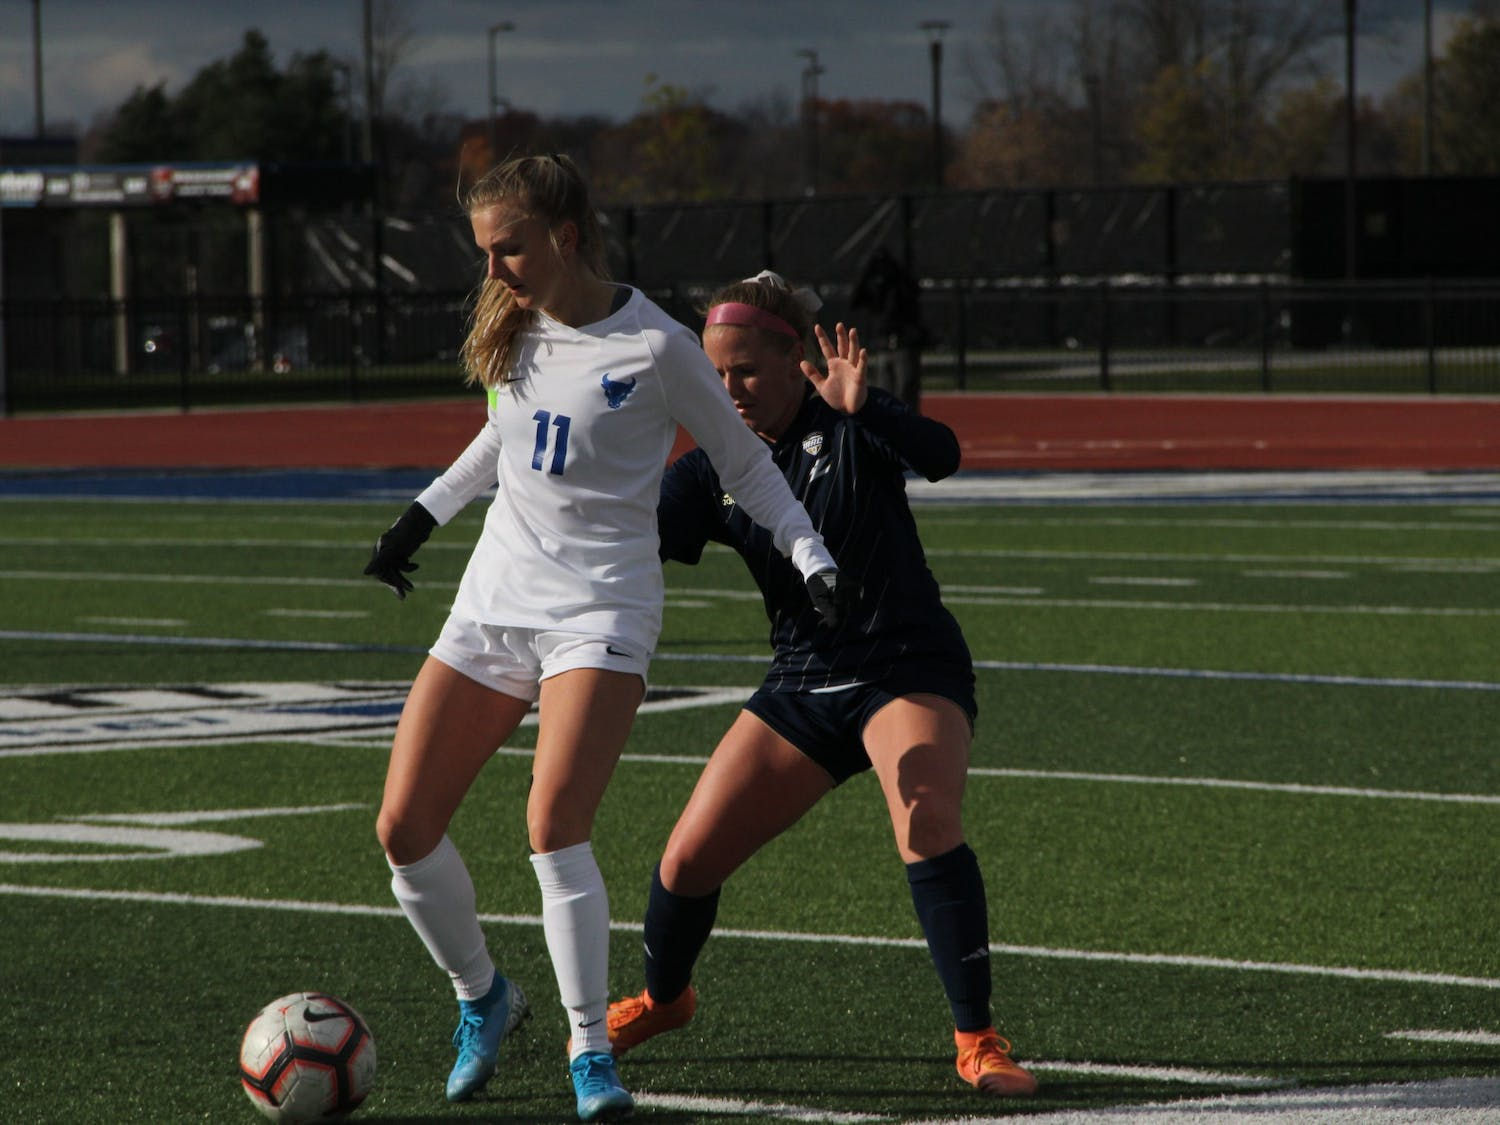 UB midfielder Marcy Barberic (11) defends the ball from Akron during the 2019 MAC Quarterfinals.